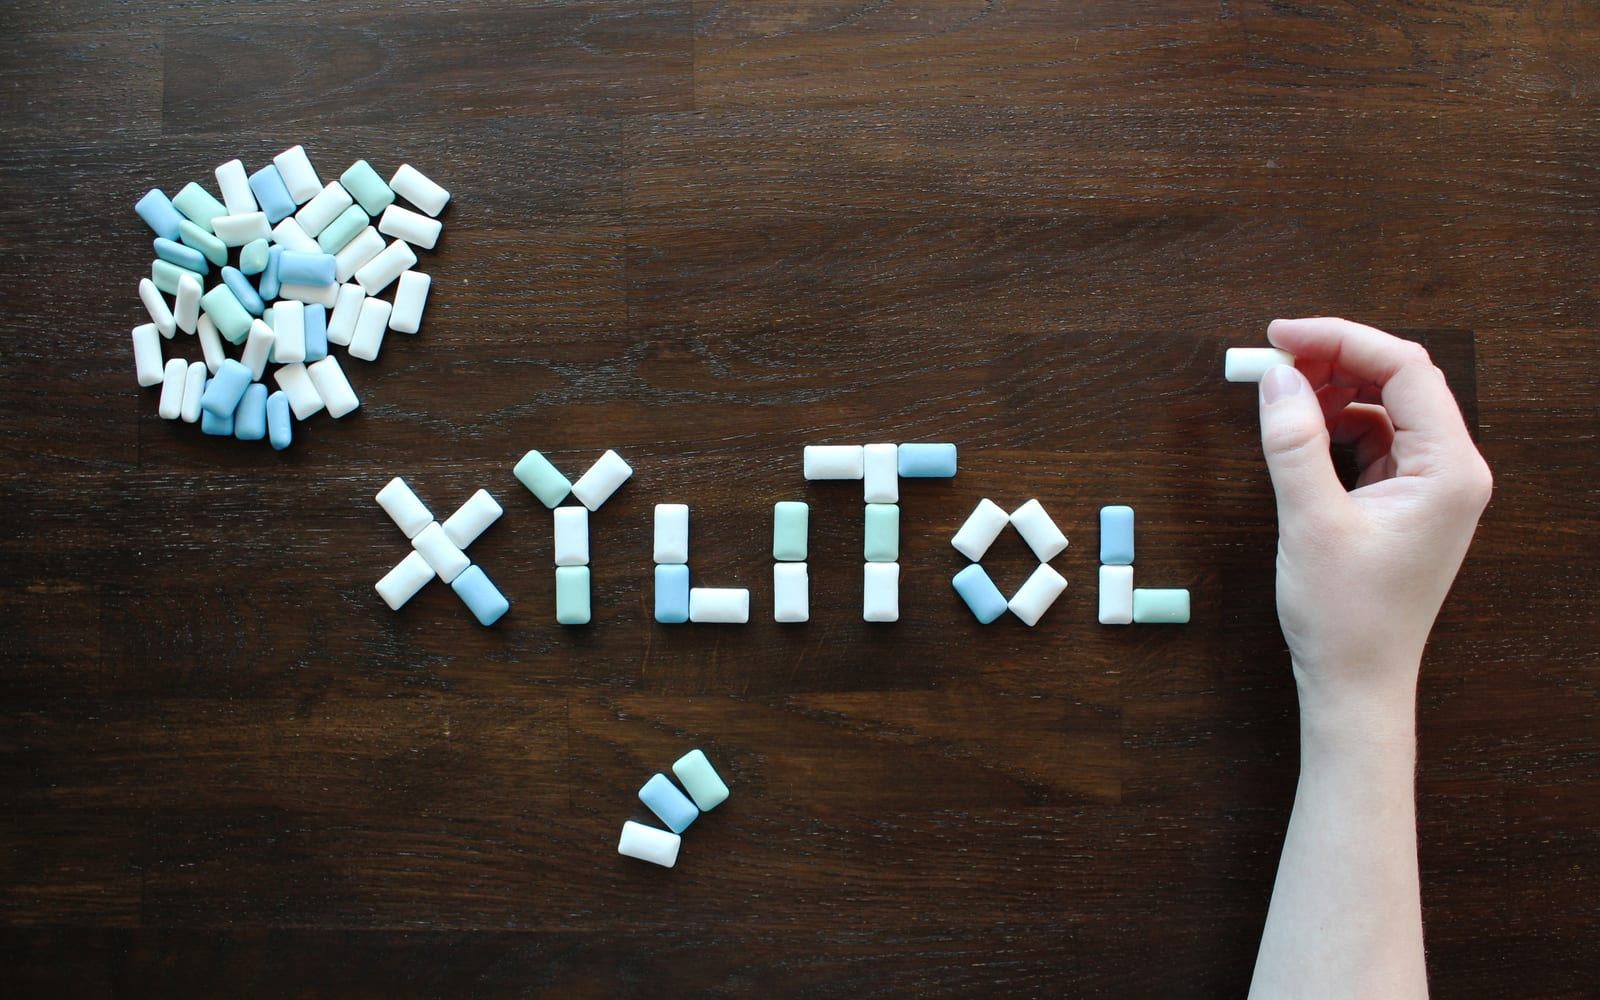 Xylitol Spelled Out In Gum